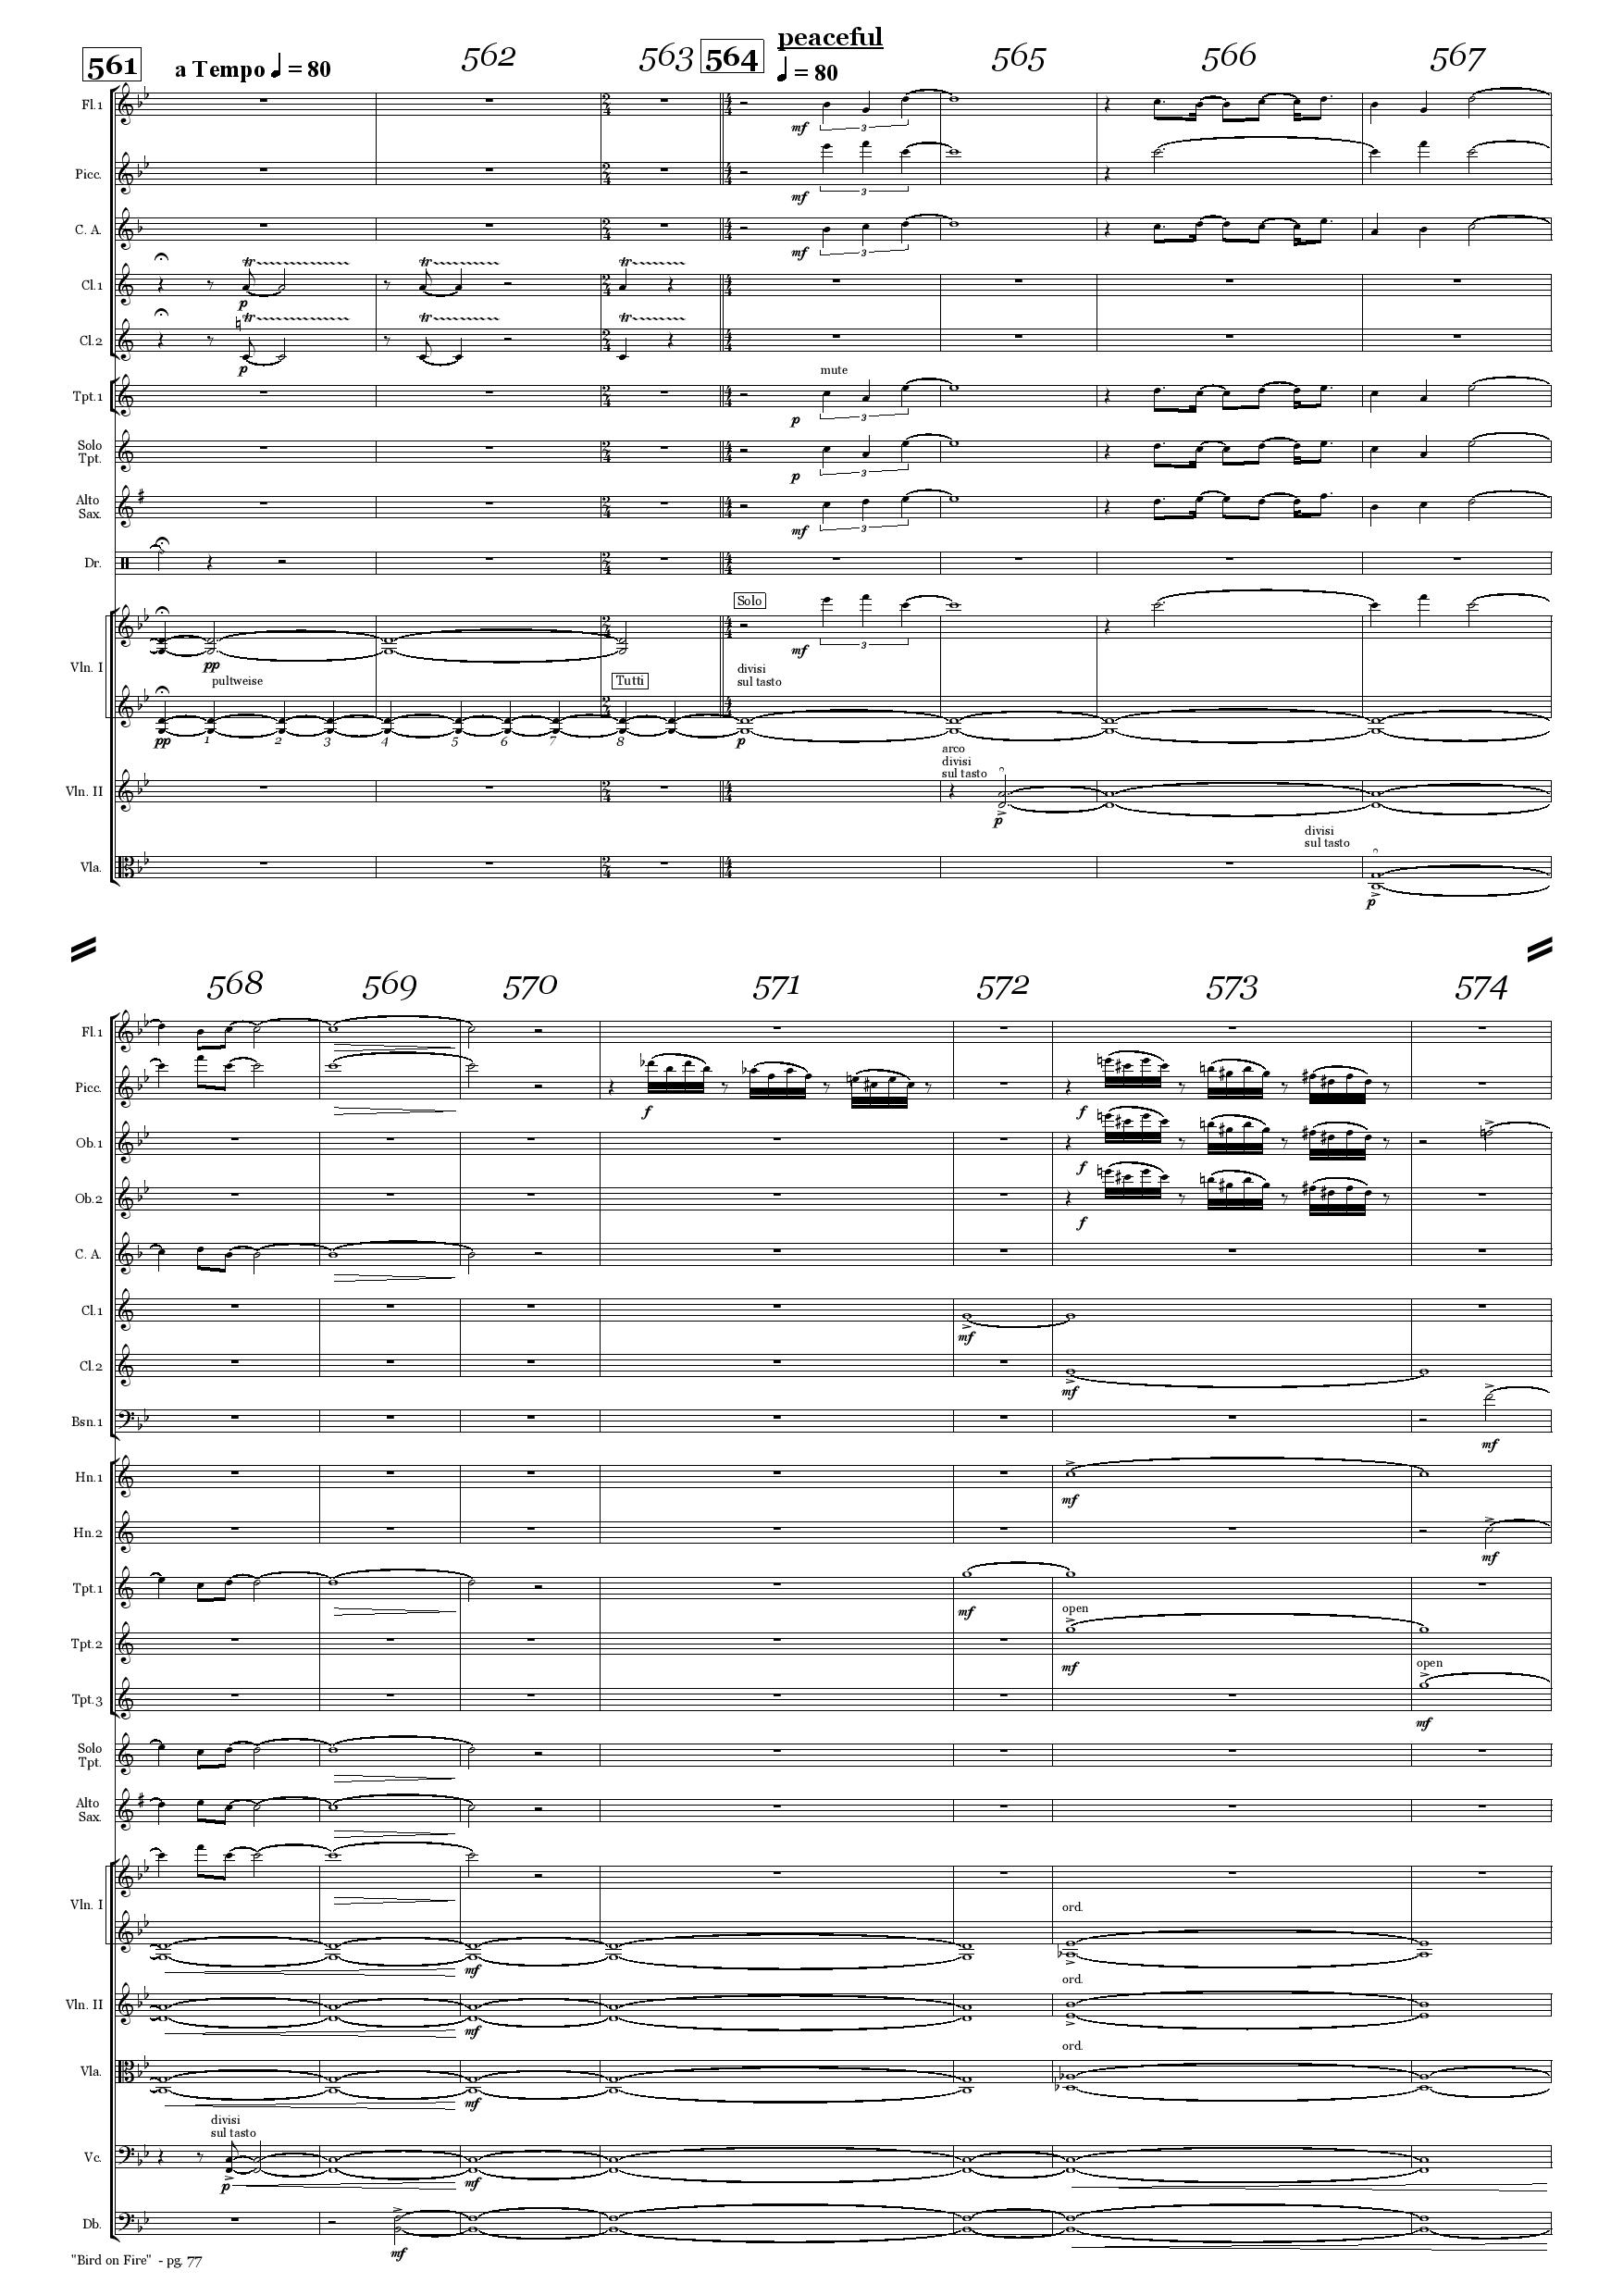 Bird on Fire - score-page-080.jpg